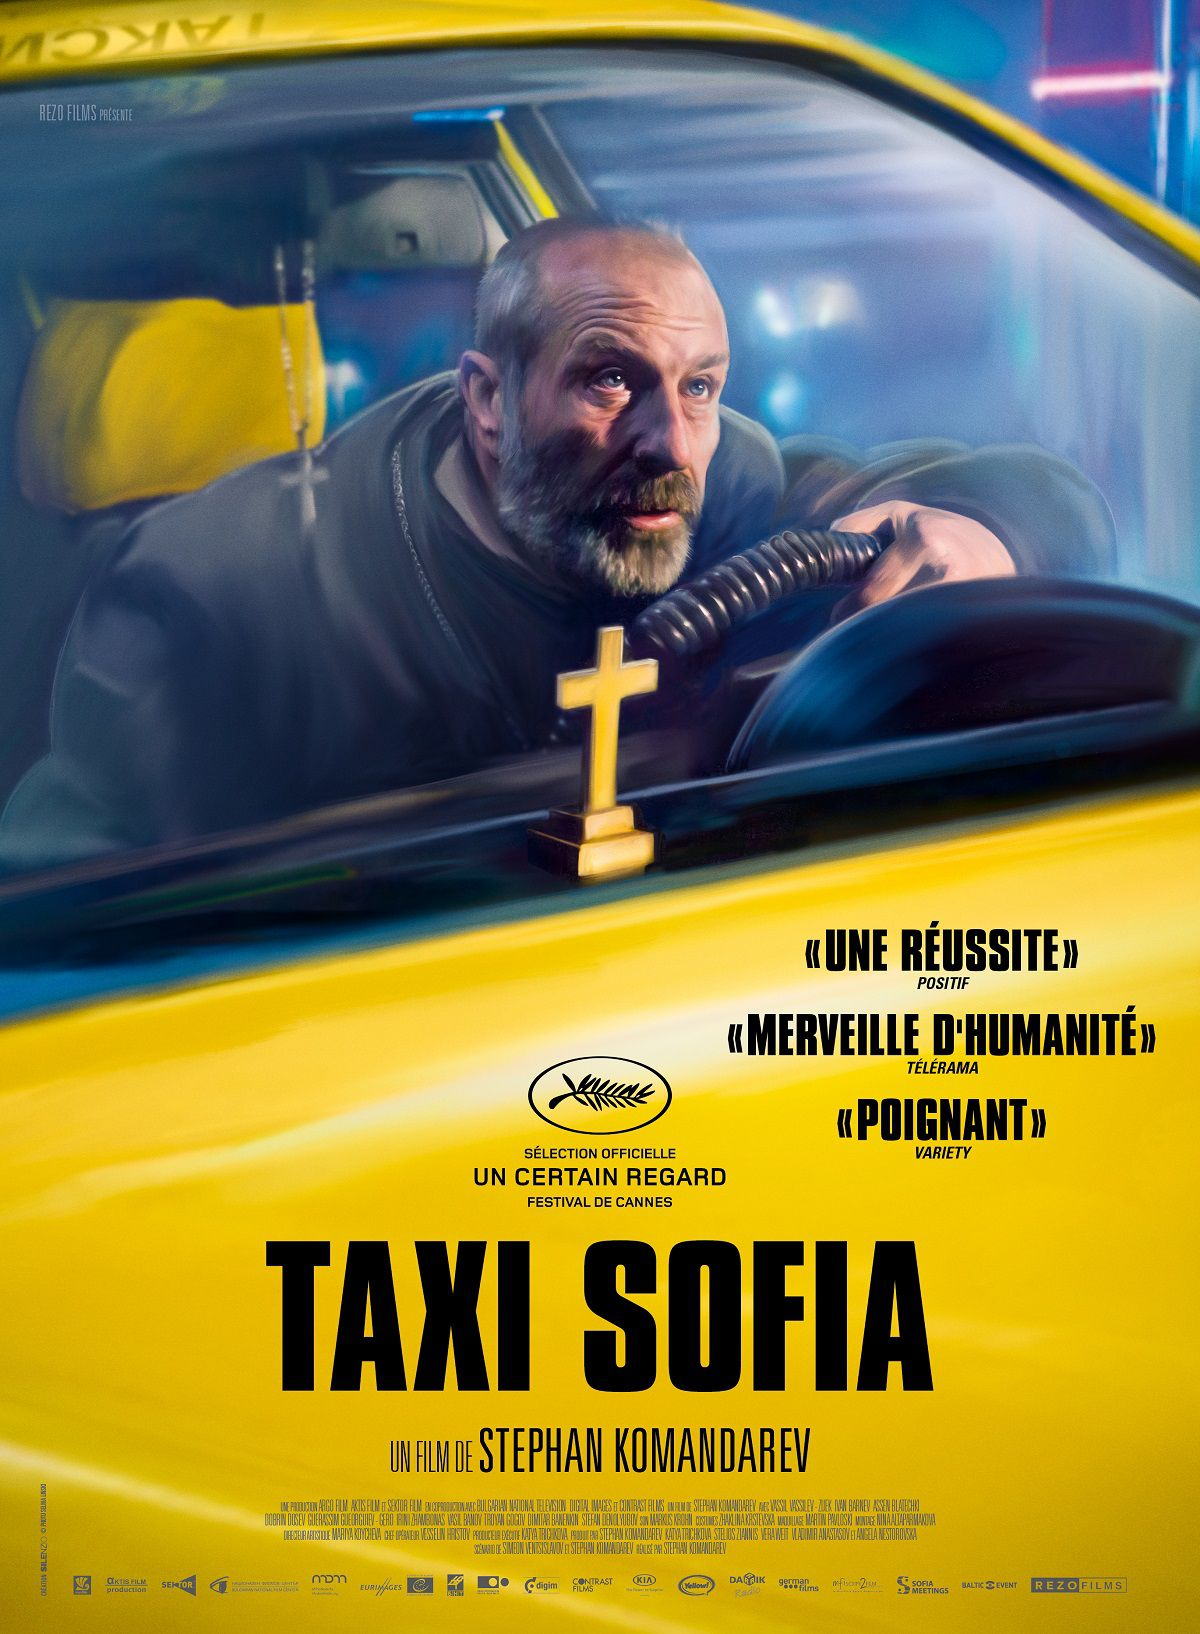 Taxi Sofia - Film (2017) streaming VF gratuit complet